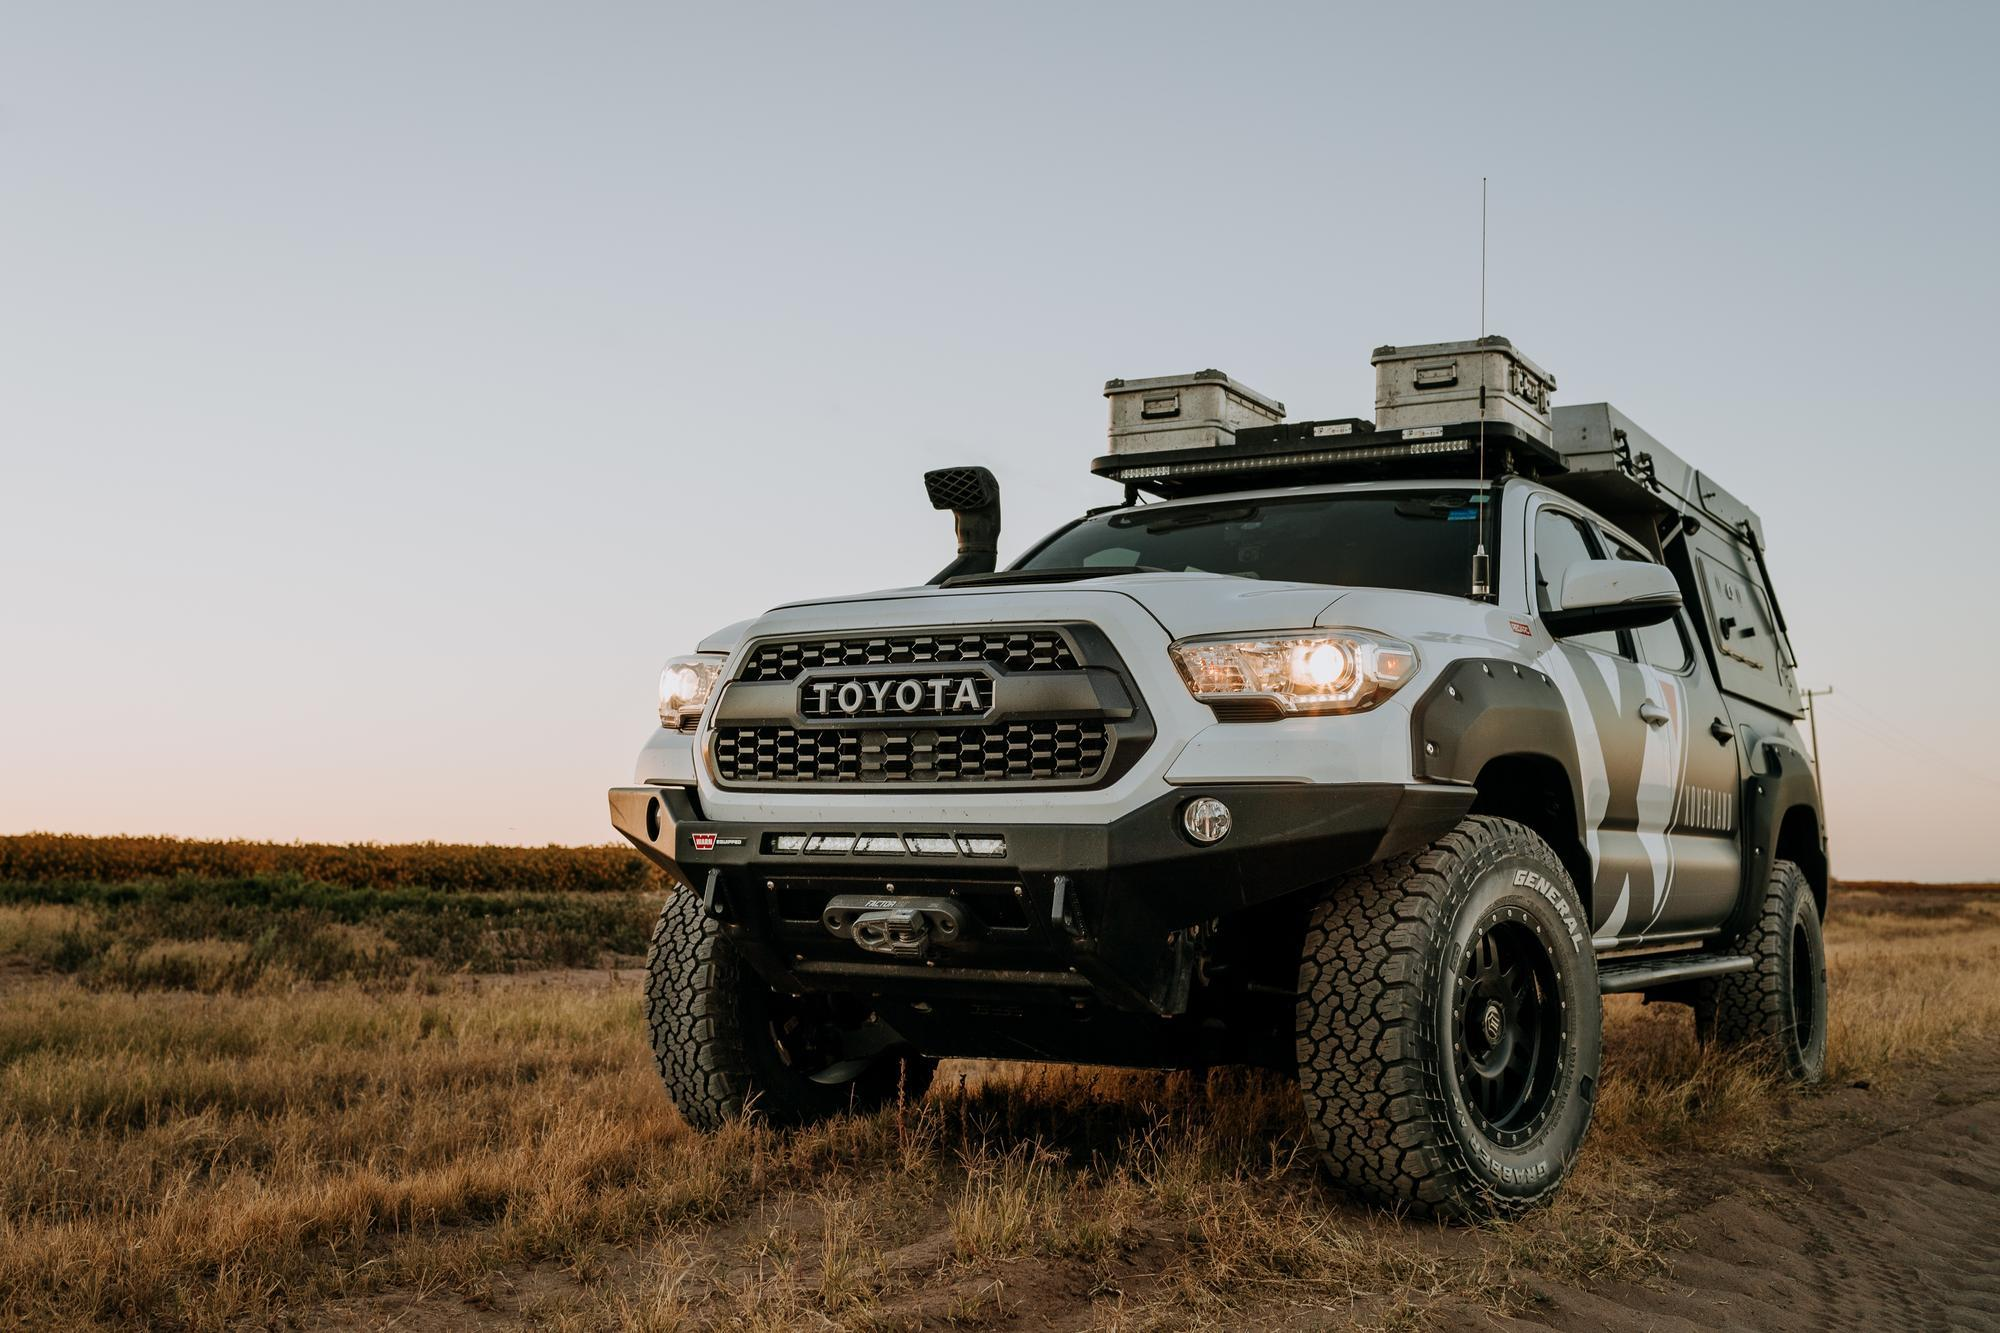 Rubber Match Part II: Choosing the Right Tire for Your Overlander